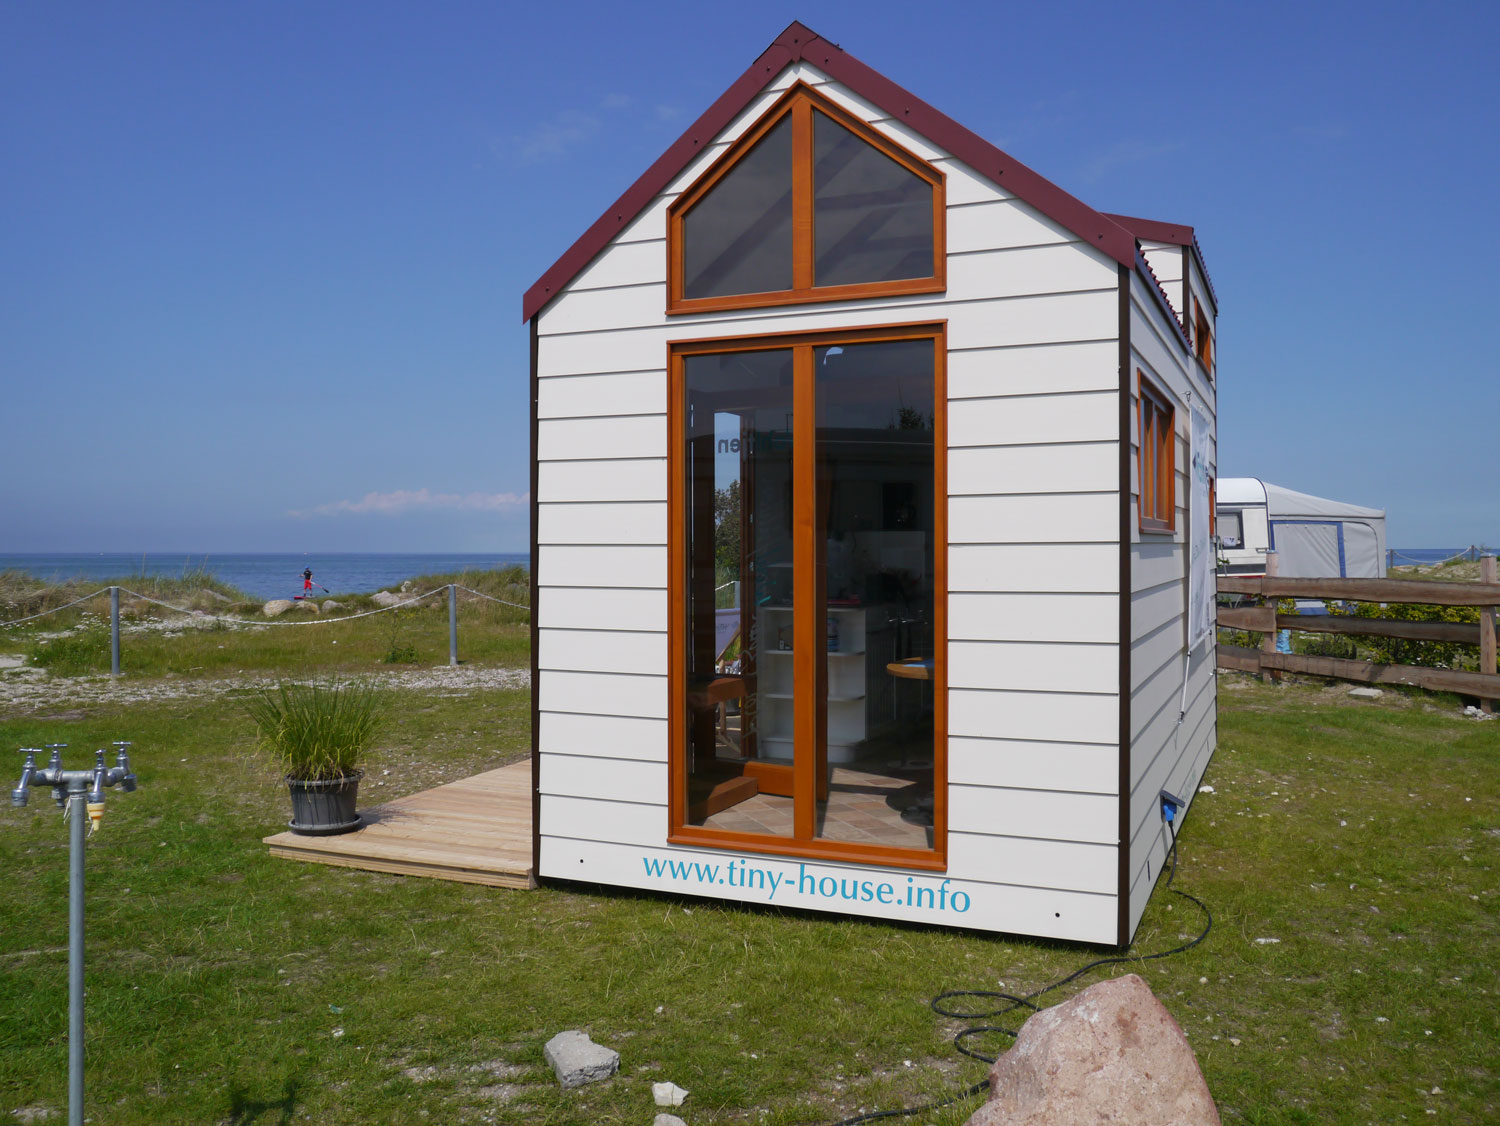 Tiny-House by Woehltjen am Meer